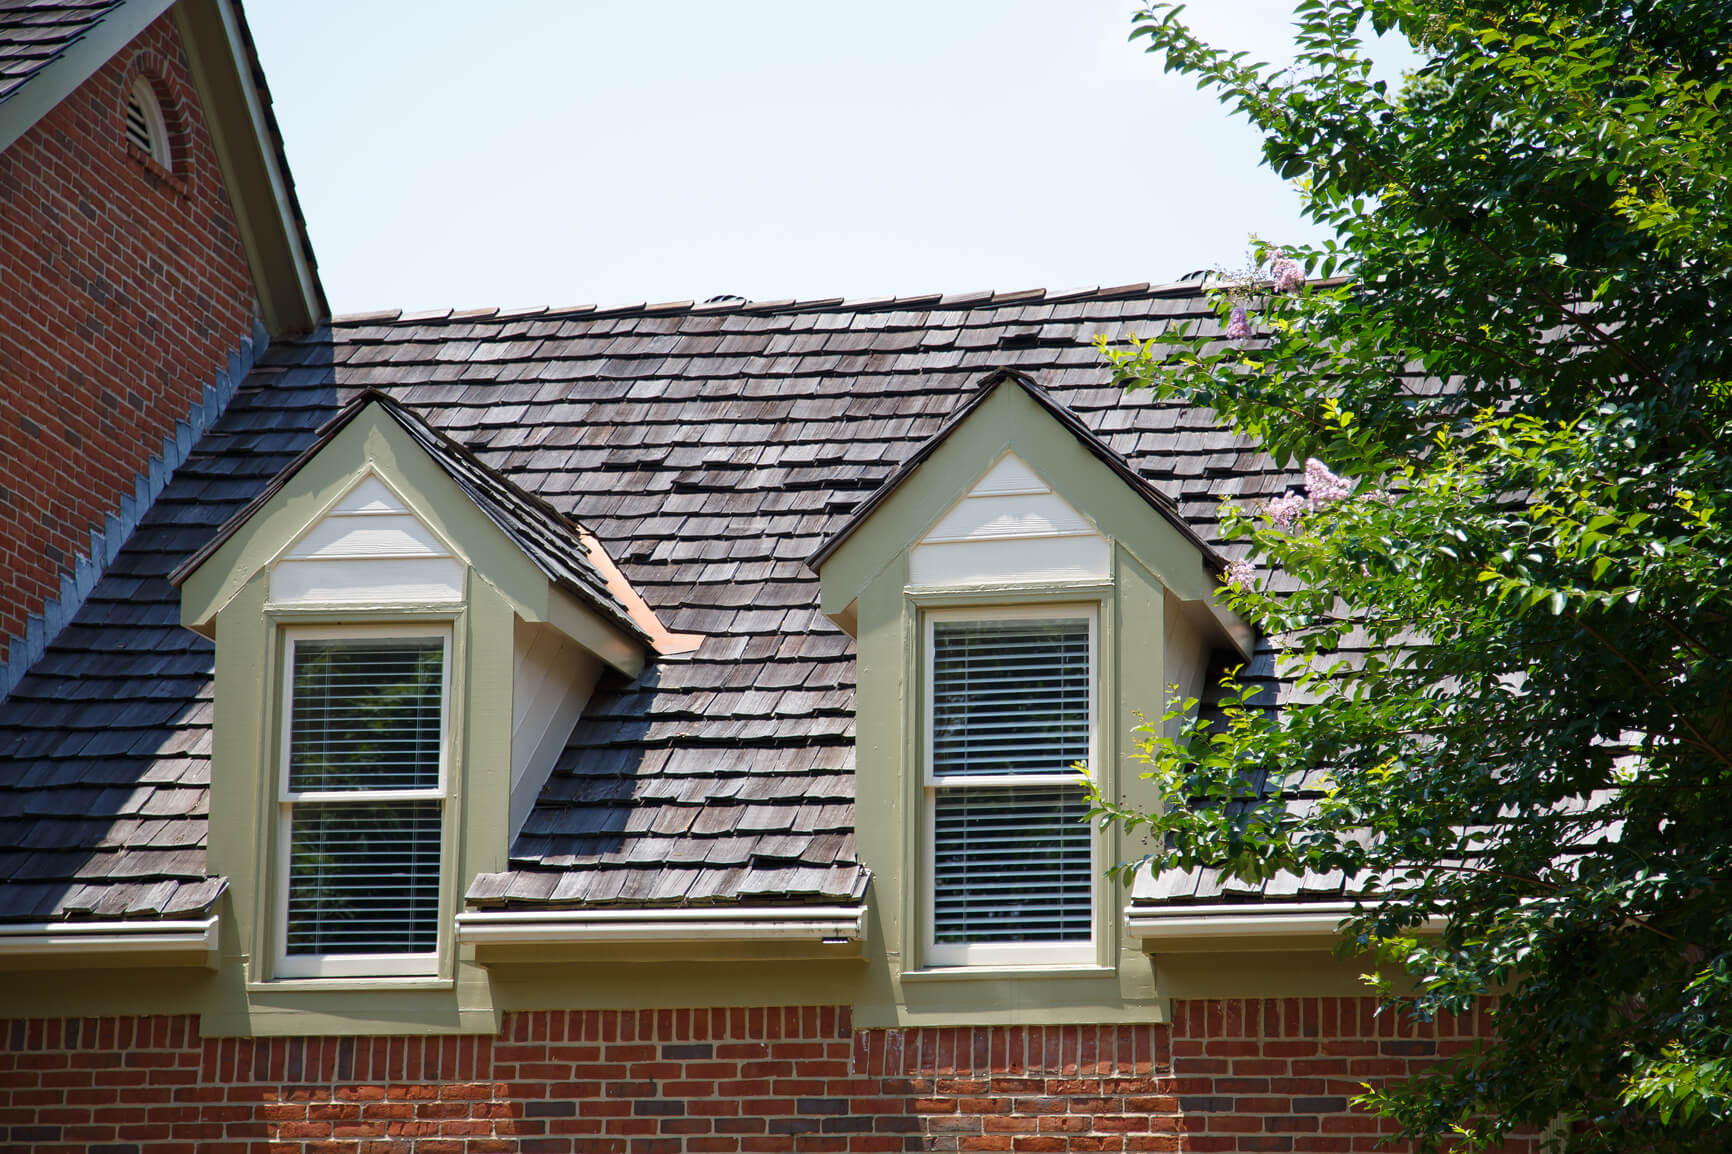 Roofing Material: Are wood shingles right for my house?